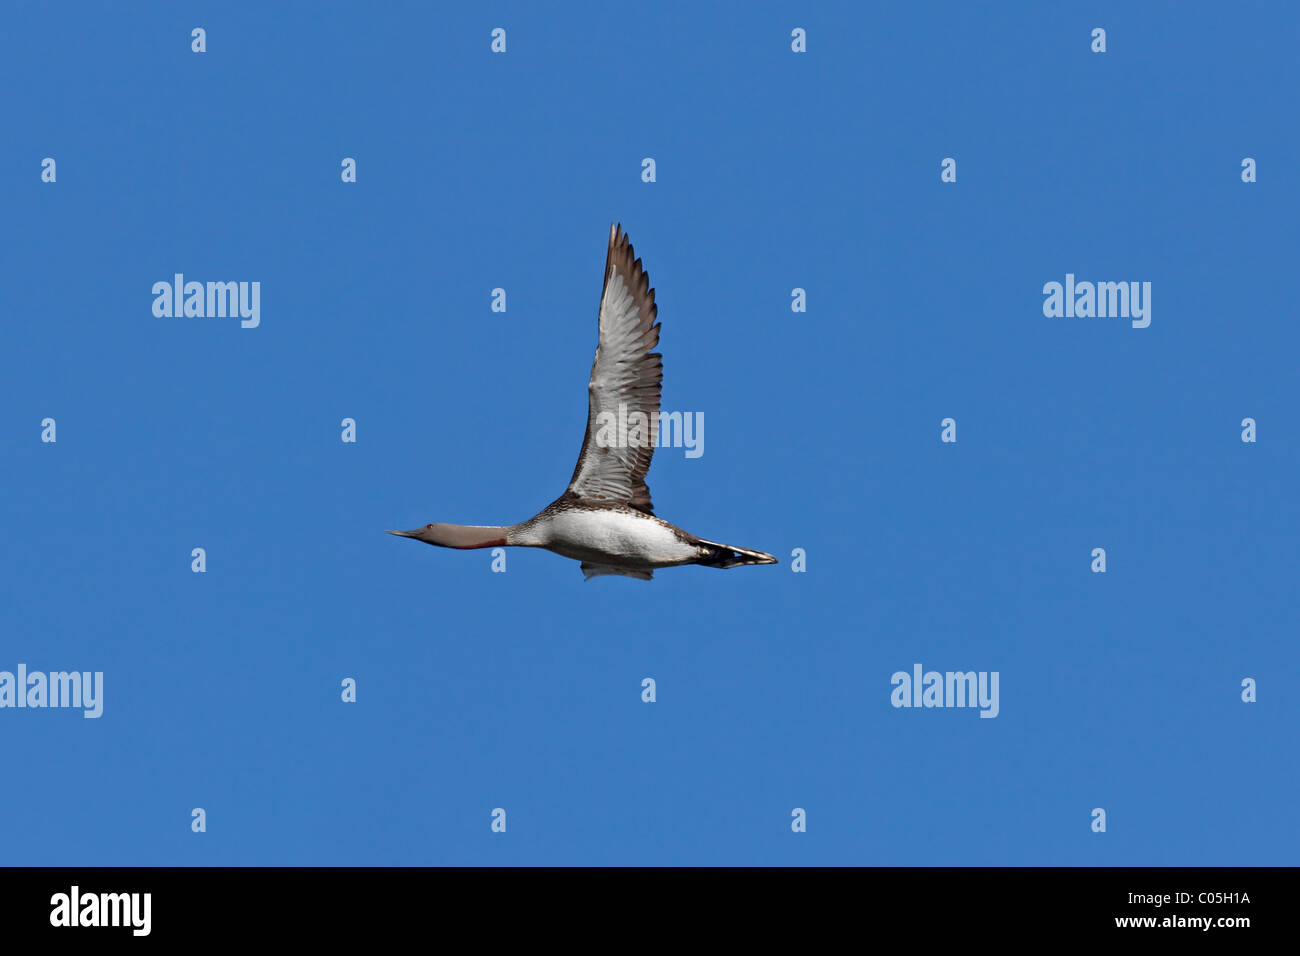 Red-throated Diver (Gavia stellata) in flight, Sweden - Stock Image